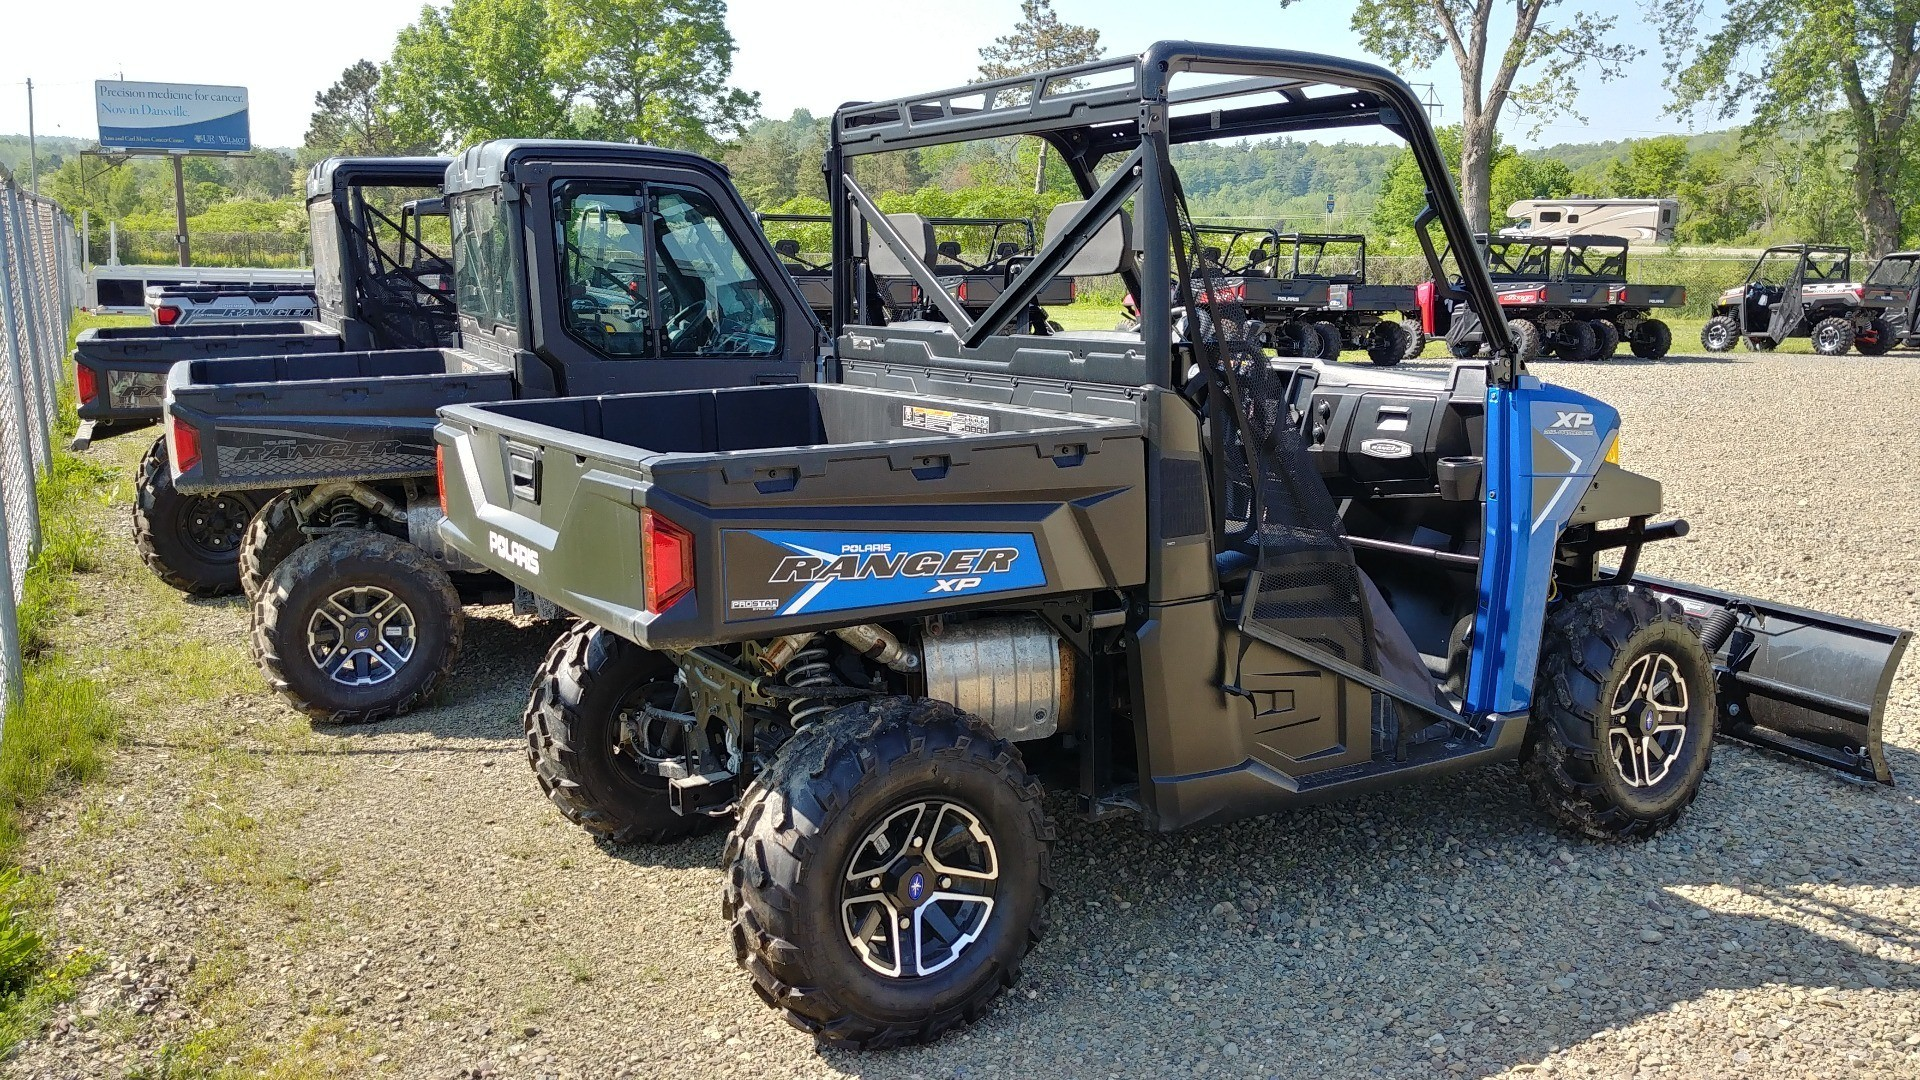 2018 Polaris Ranger XP 900 EPS 4